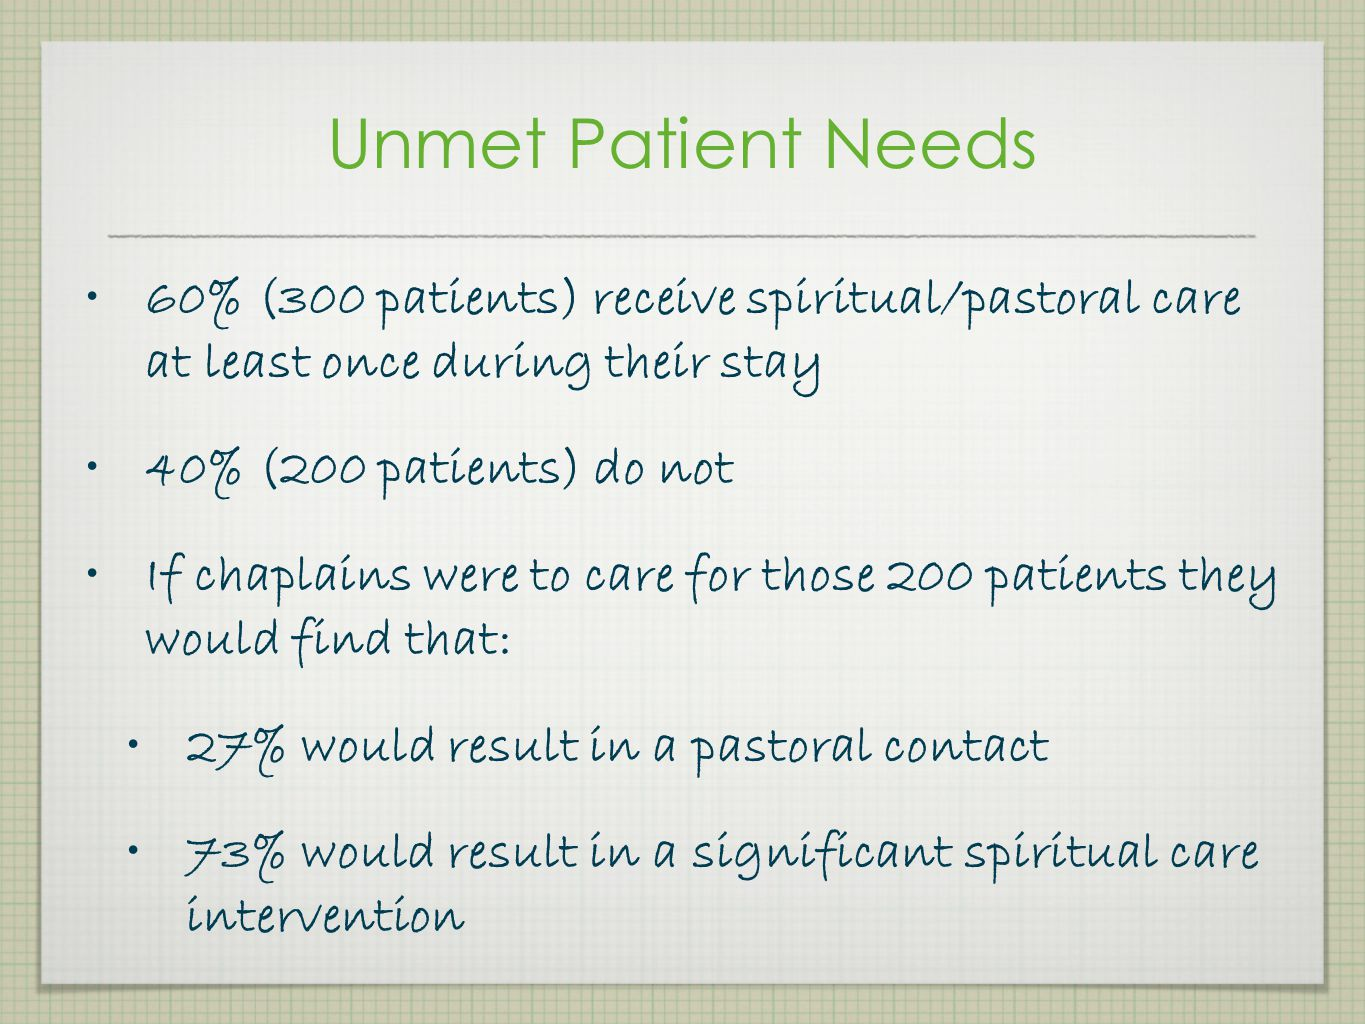 Unmet Patient Needs 60% (300 patients) receive spiritual/pastoral care at least once during their stay.